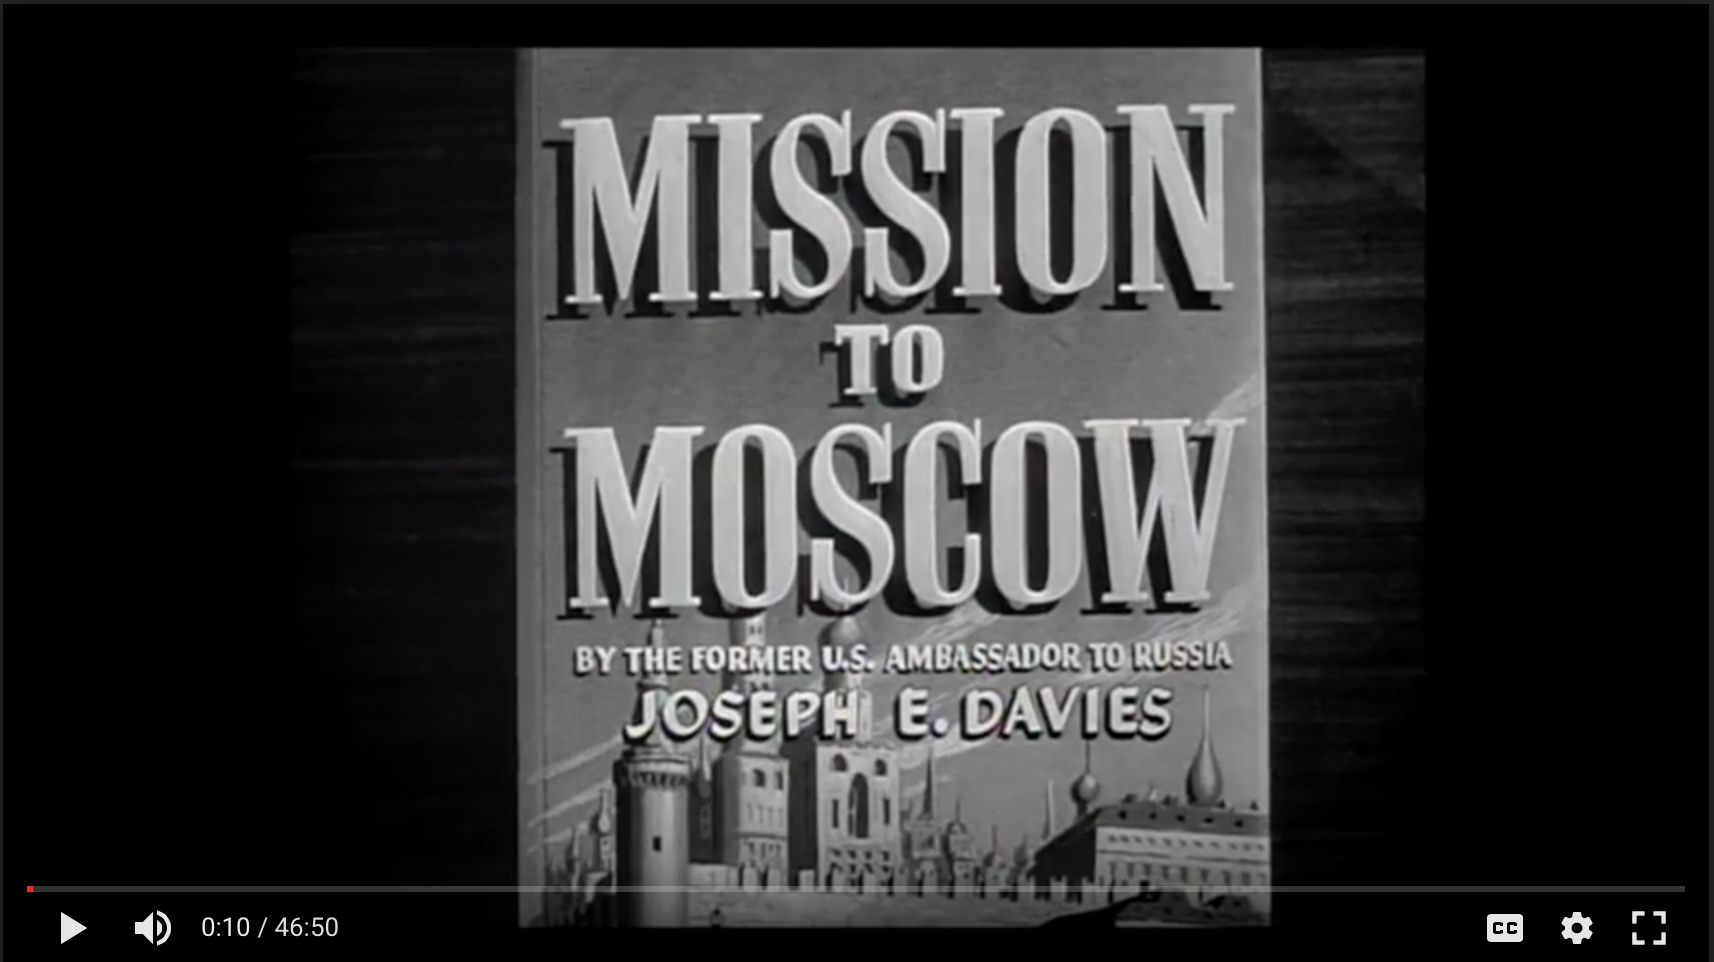 Mission to Moscow still